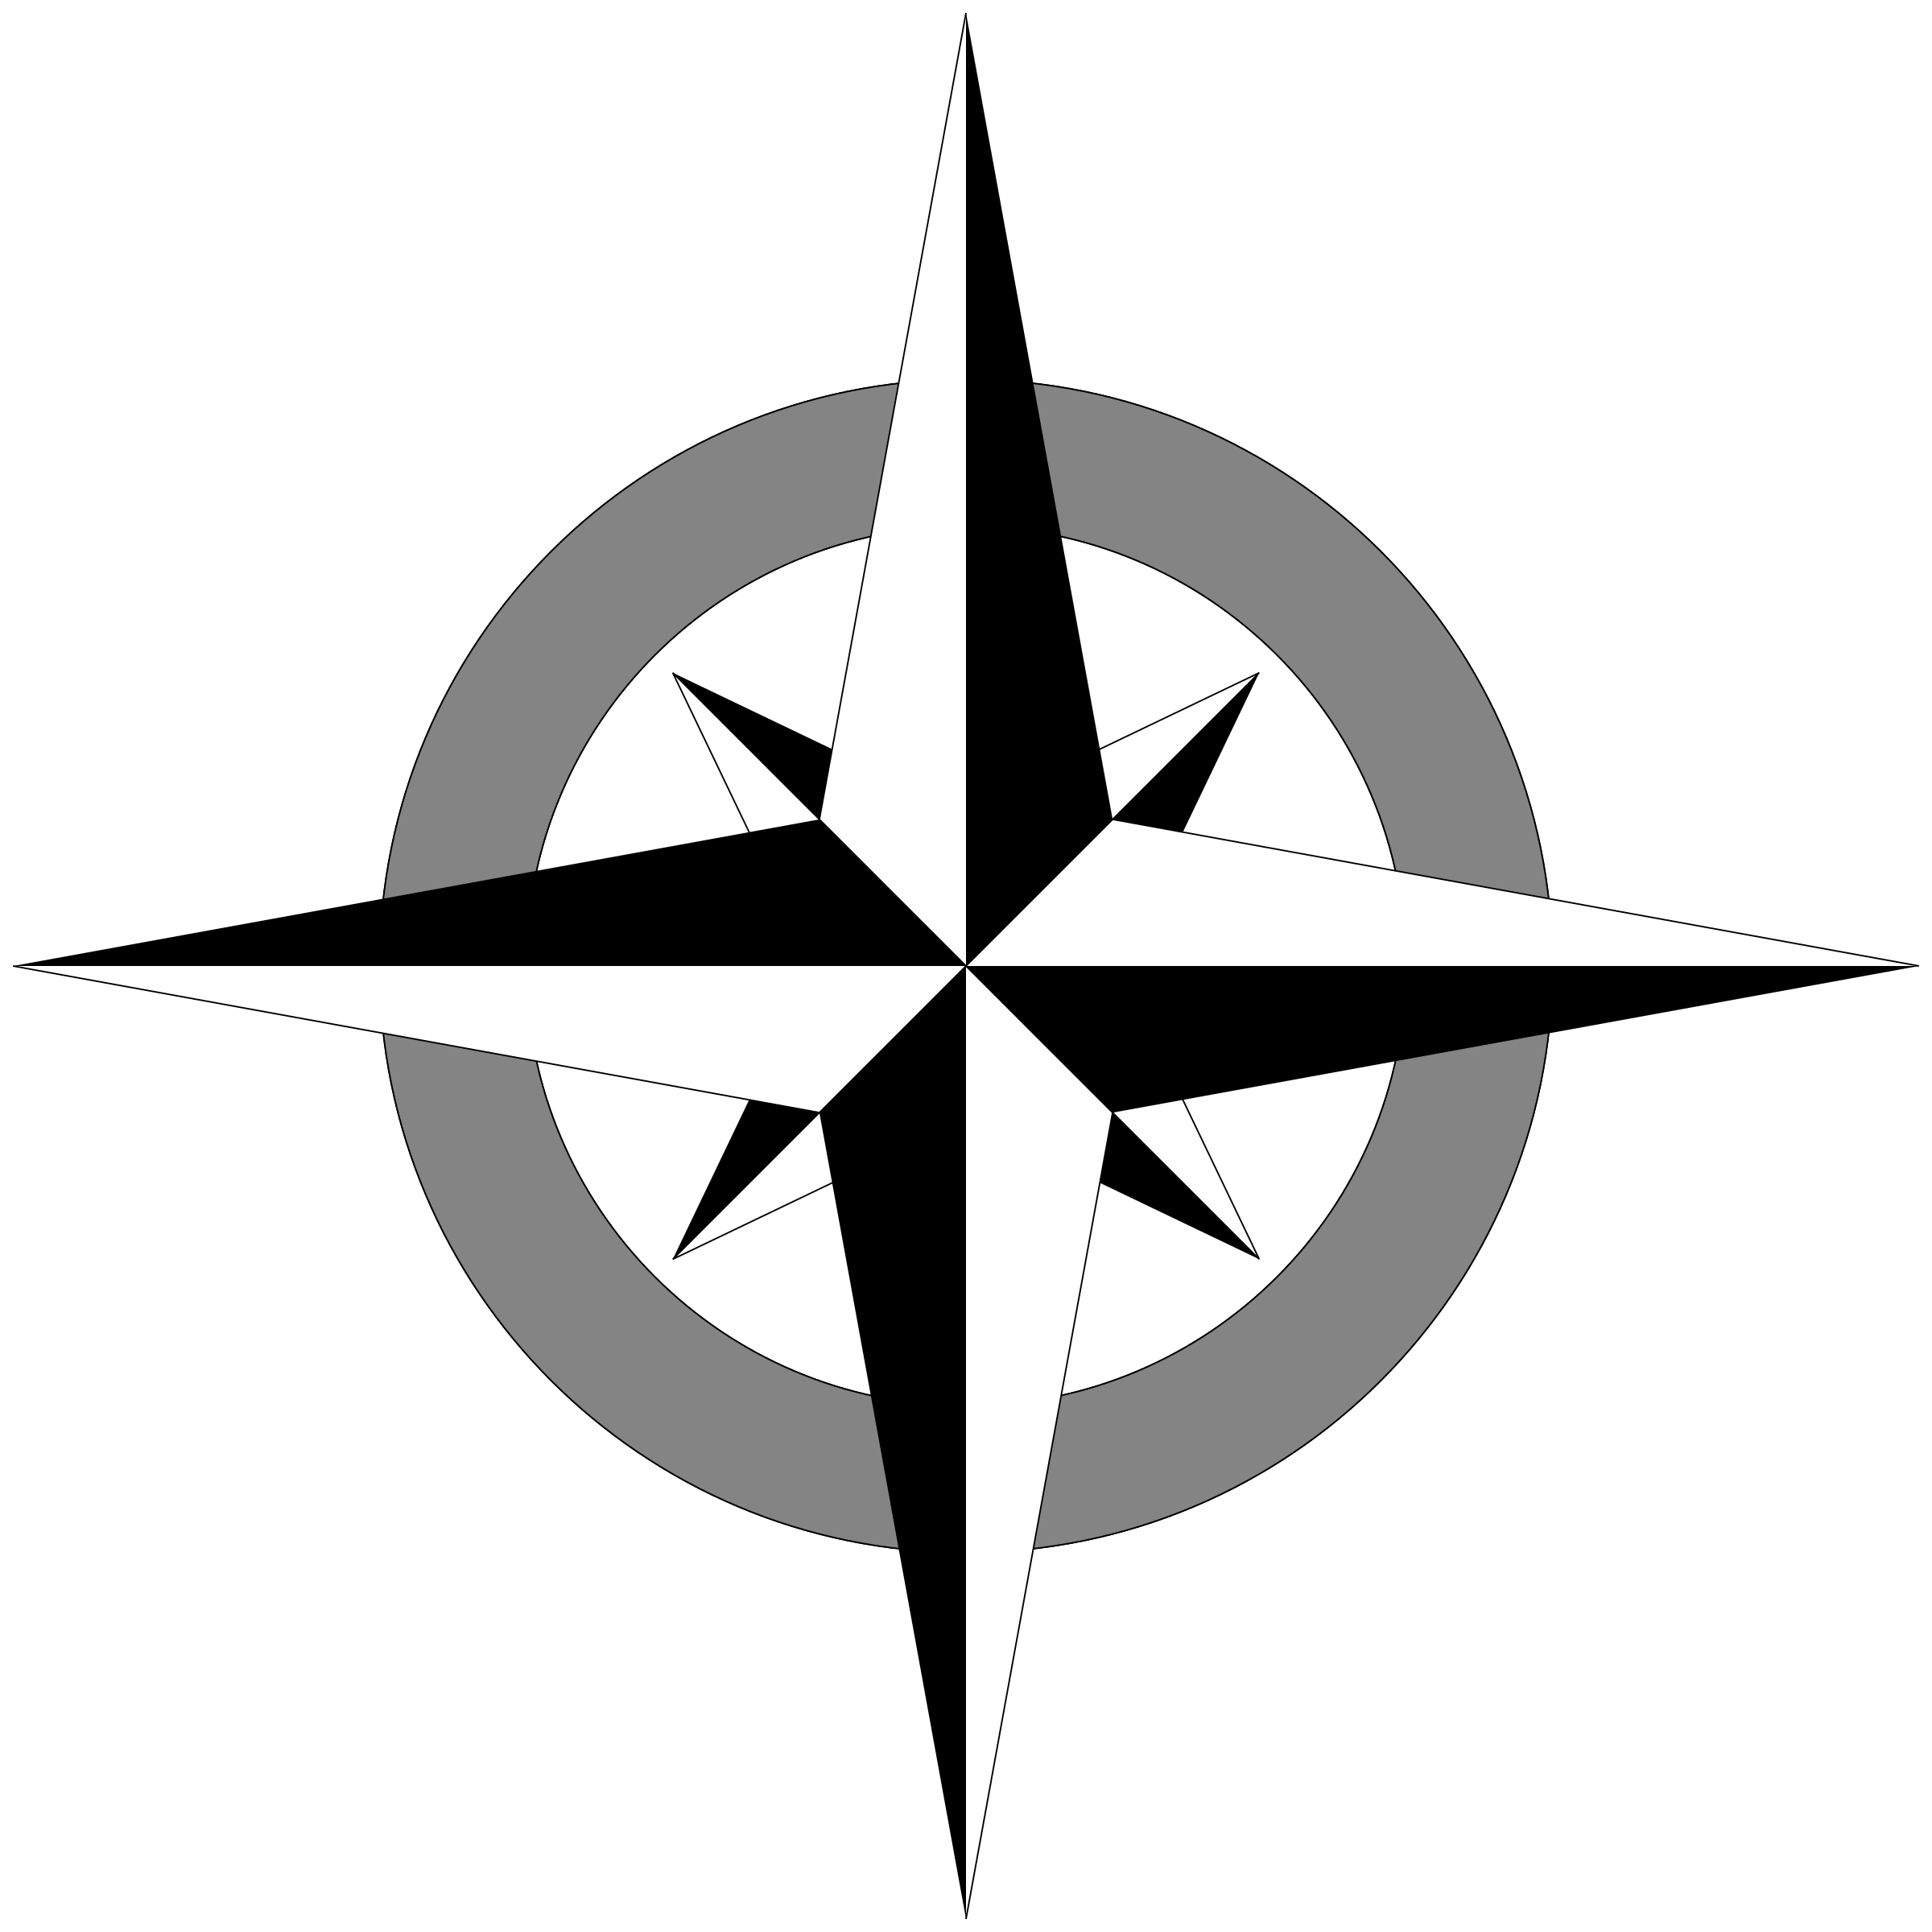 Compass Rose by SeriousTux